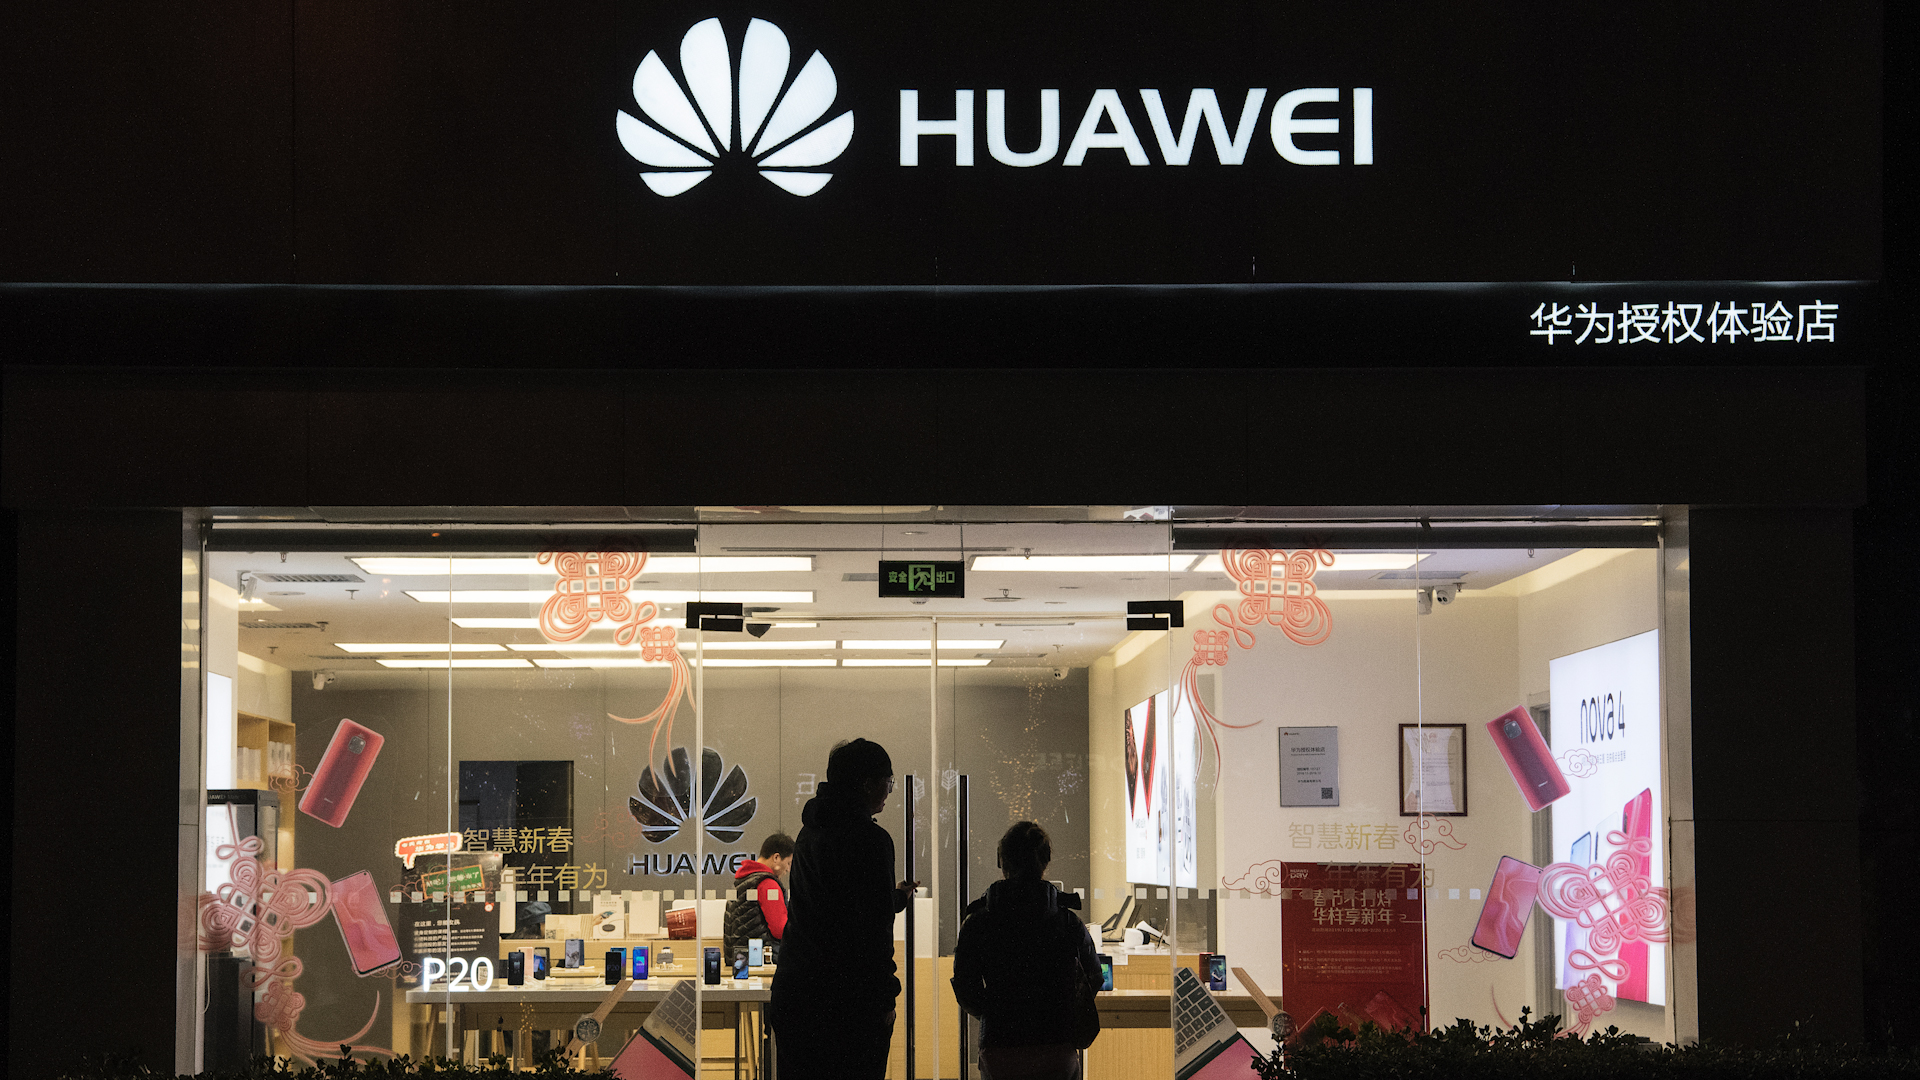 Why Chinese Tech Giant Huawei Scares Countries Like the U.S.